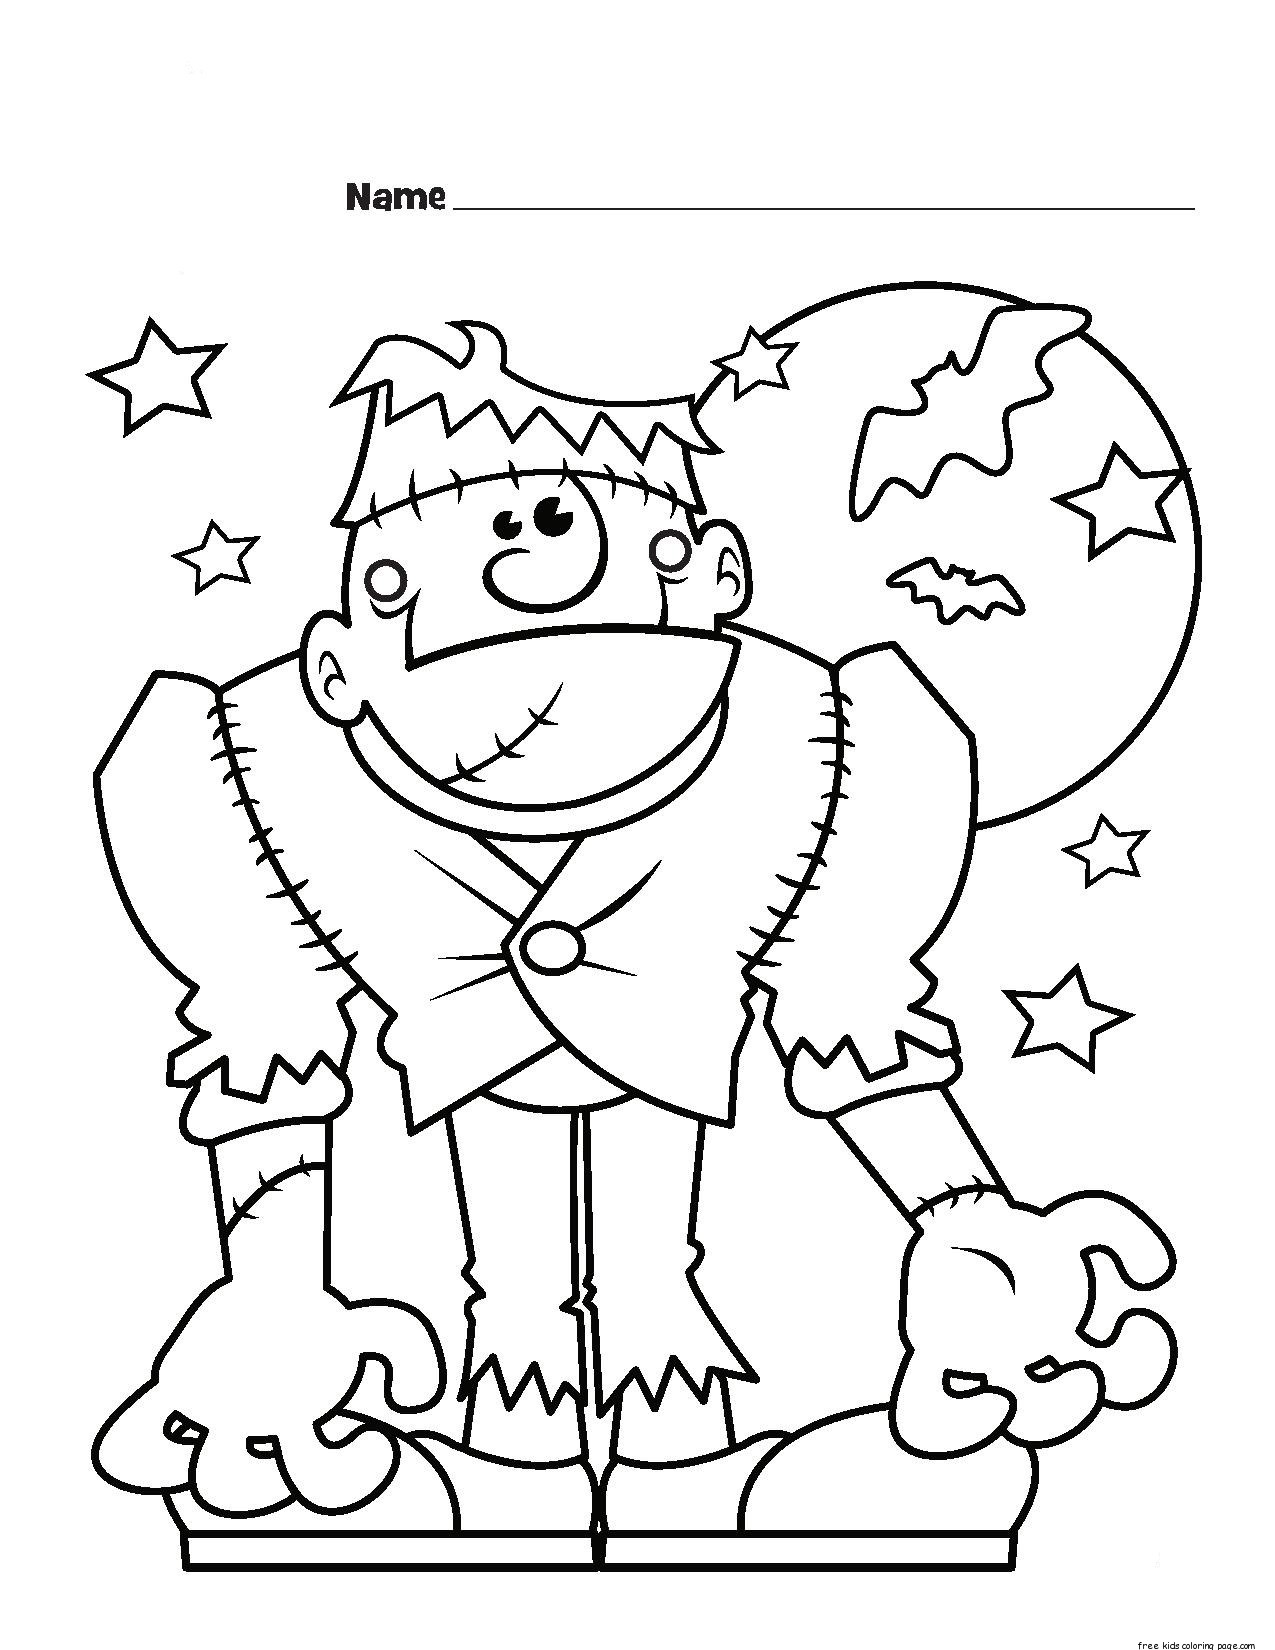 halloween frankenstein coloring pages these halloween coloring pages are the perfect antidote to fall boredom halloween frankenstein pages coloring halloween